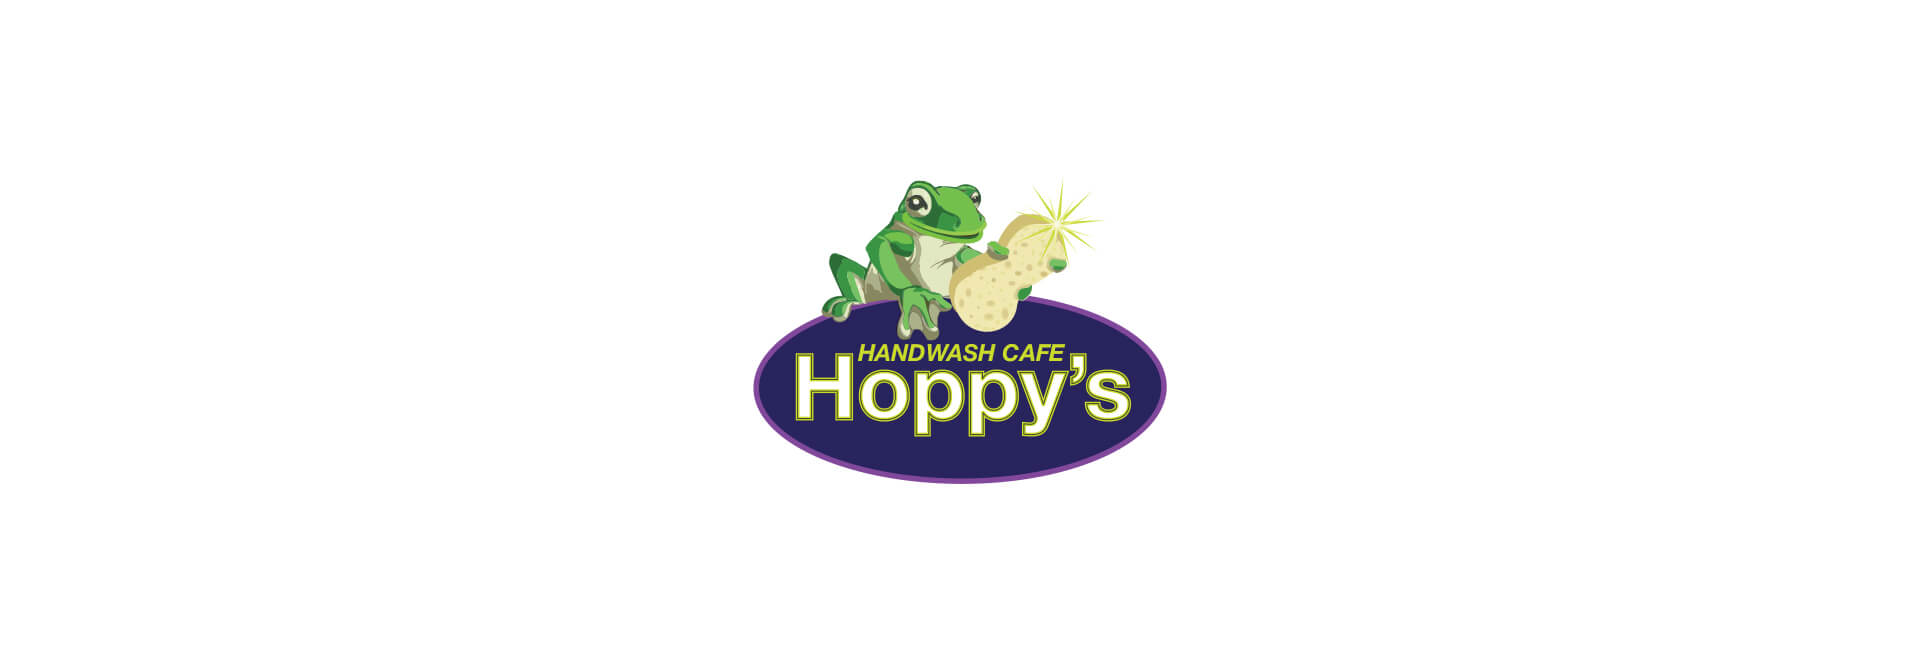 Hoppy's Hand Carwash and Cafes Club Sponsors Surfers Paradise Surf Life Saving Club